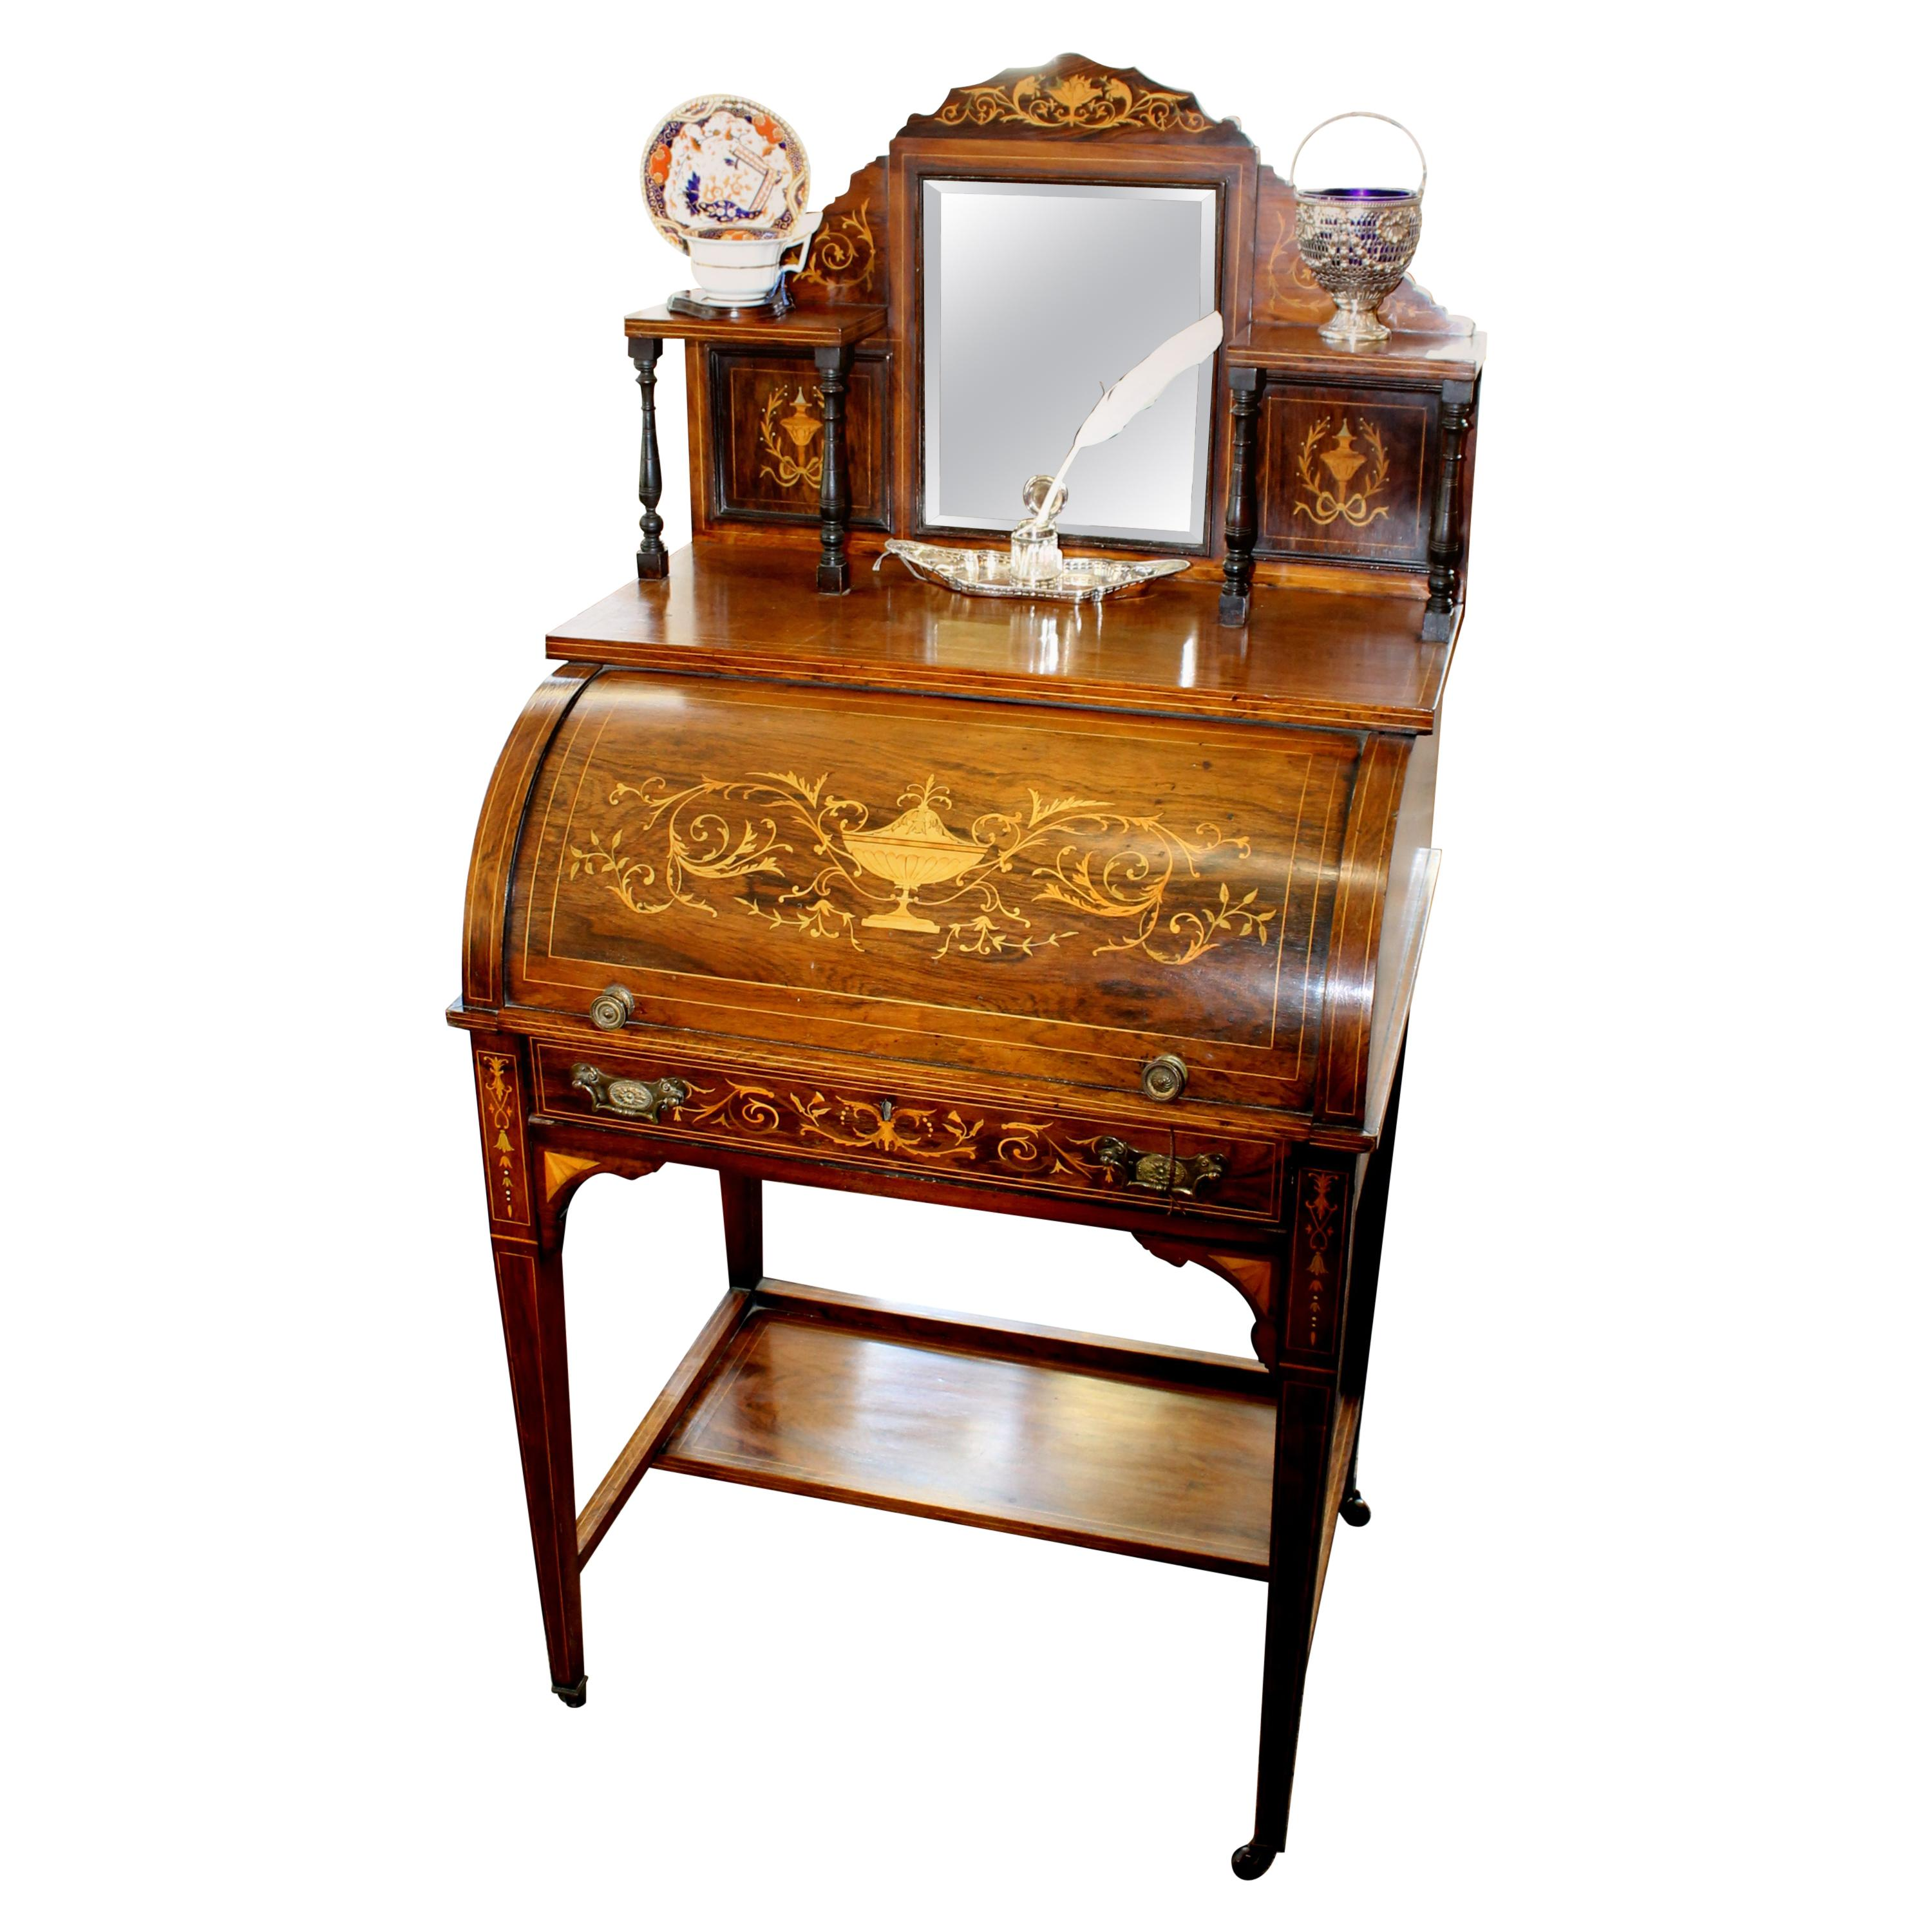 Antique English Marquetry Inlaid Rosewood Cylinder-Top Ladies Writing Desk